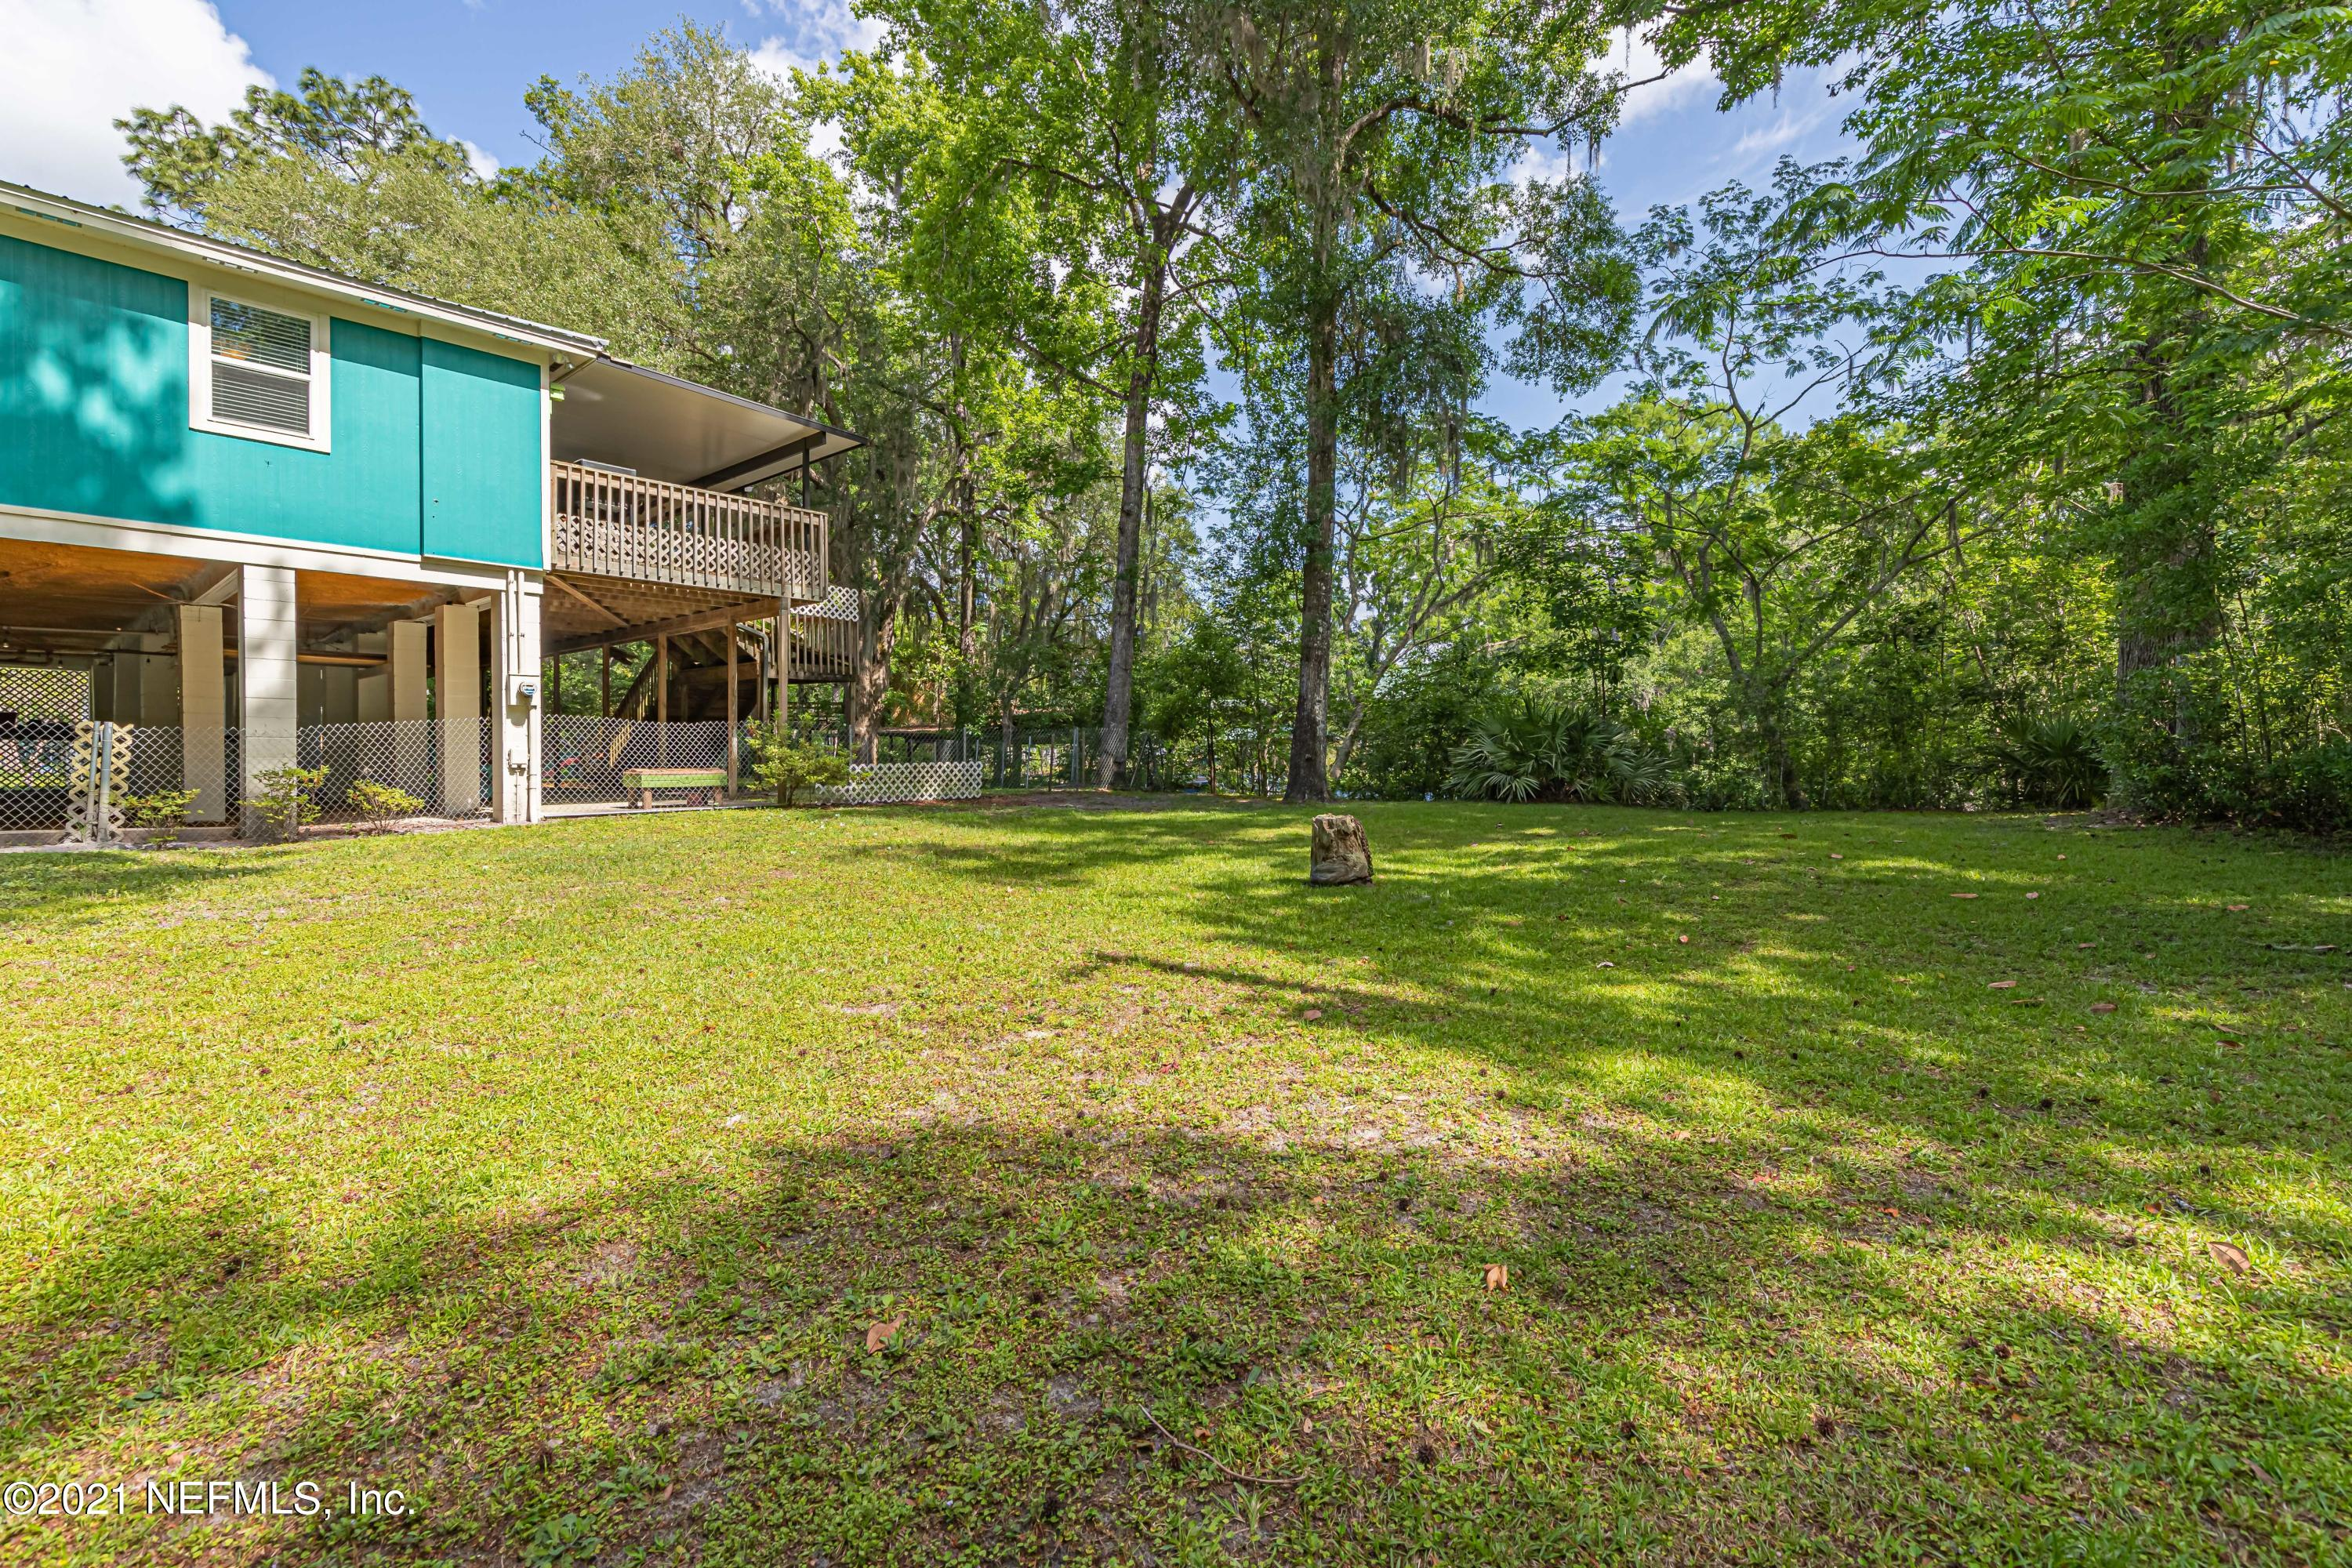 4056 SCENIC, MIDDLEBURG, FLORIDA 32068, 4 Bedrooms Bedrooms, ,2 BathroomsBathrooms,Residential,For sale,SCENIC,1106783